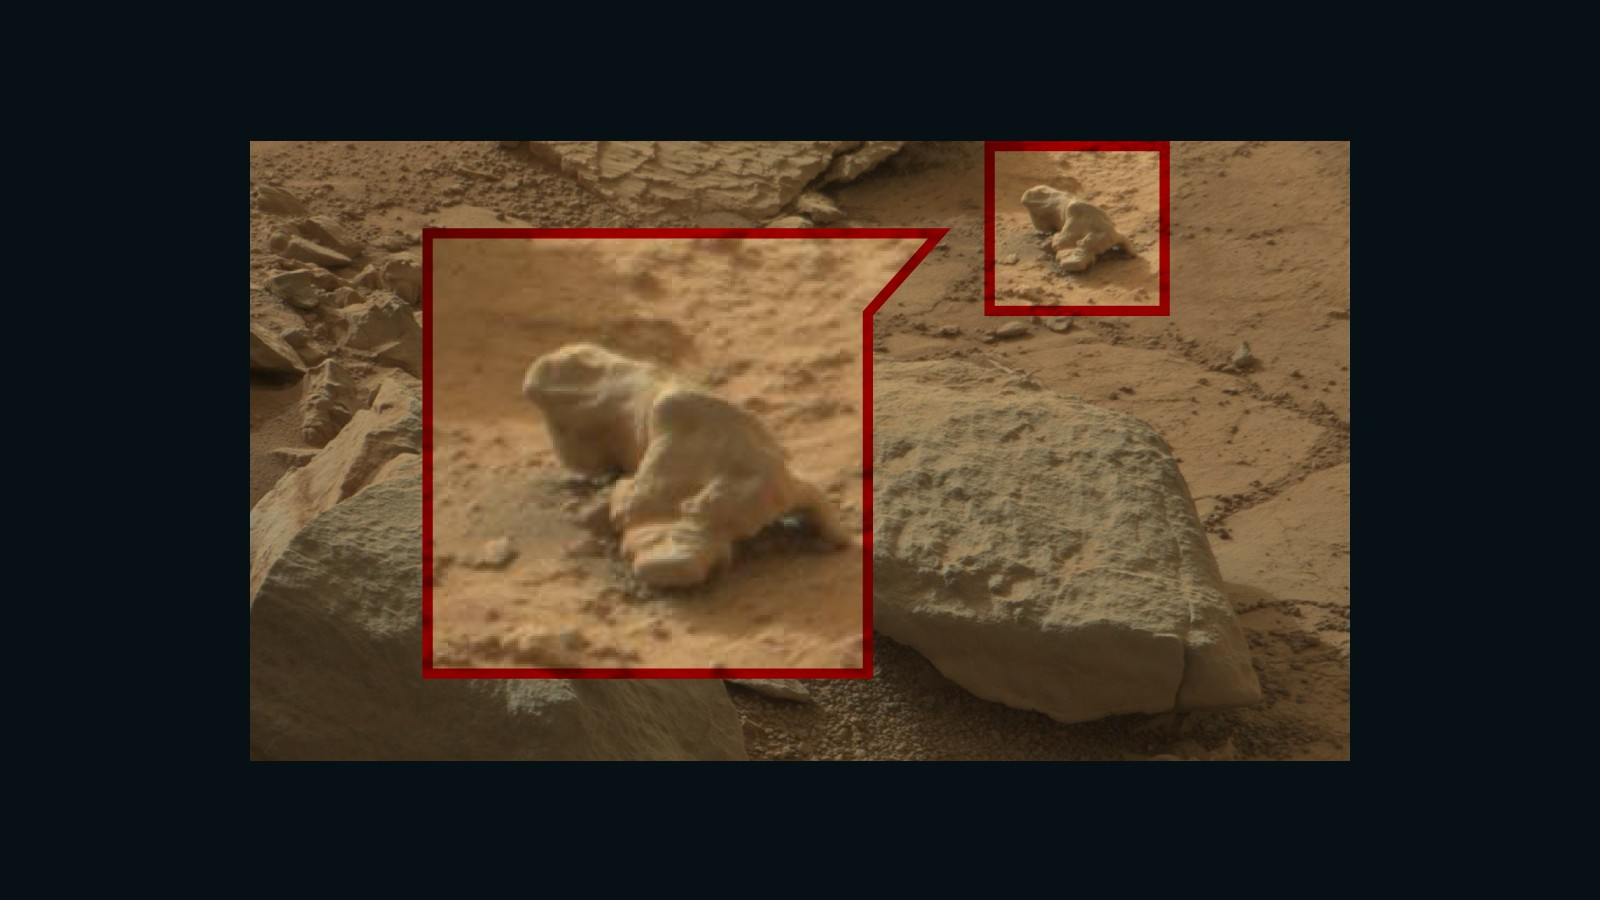 life on mars depends how you see these photos cnn